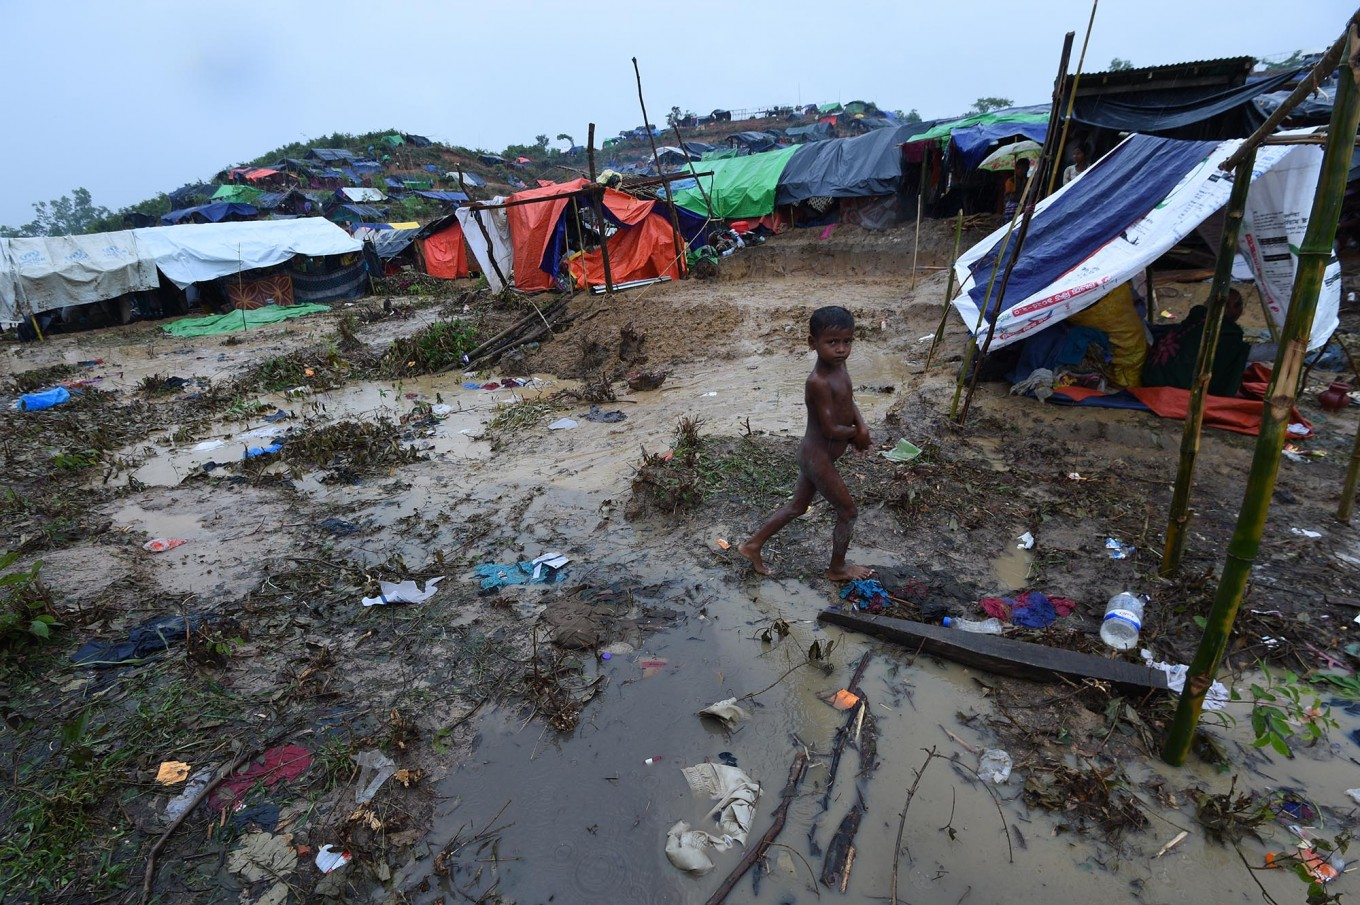 A Rohingya Muslim refugee child walks through Balukhali refugee camp near the Bangladesh town of Gumdhum on September 17, 2017. Heavy monsoon rain heaped new misery September 17 on hundreds of thousands of Muslim Rohinyga stuck in makeshift camps in Bangladesh after fleeing violence in Myanmar, as authorities started a drive to force them to a new site. The United Nations says 409,000 Rohingyas have now overwhelmed Cox's Bazar since August 25 when the military in Buddhist-majority Myanmar launched operations in Rakhine state. AFP/ Dominique Faget